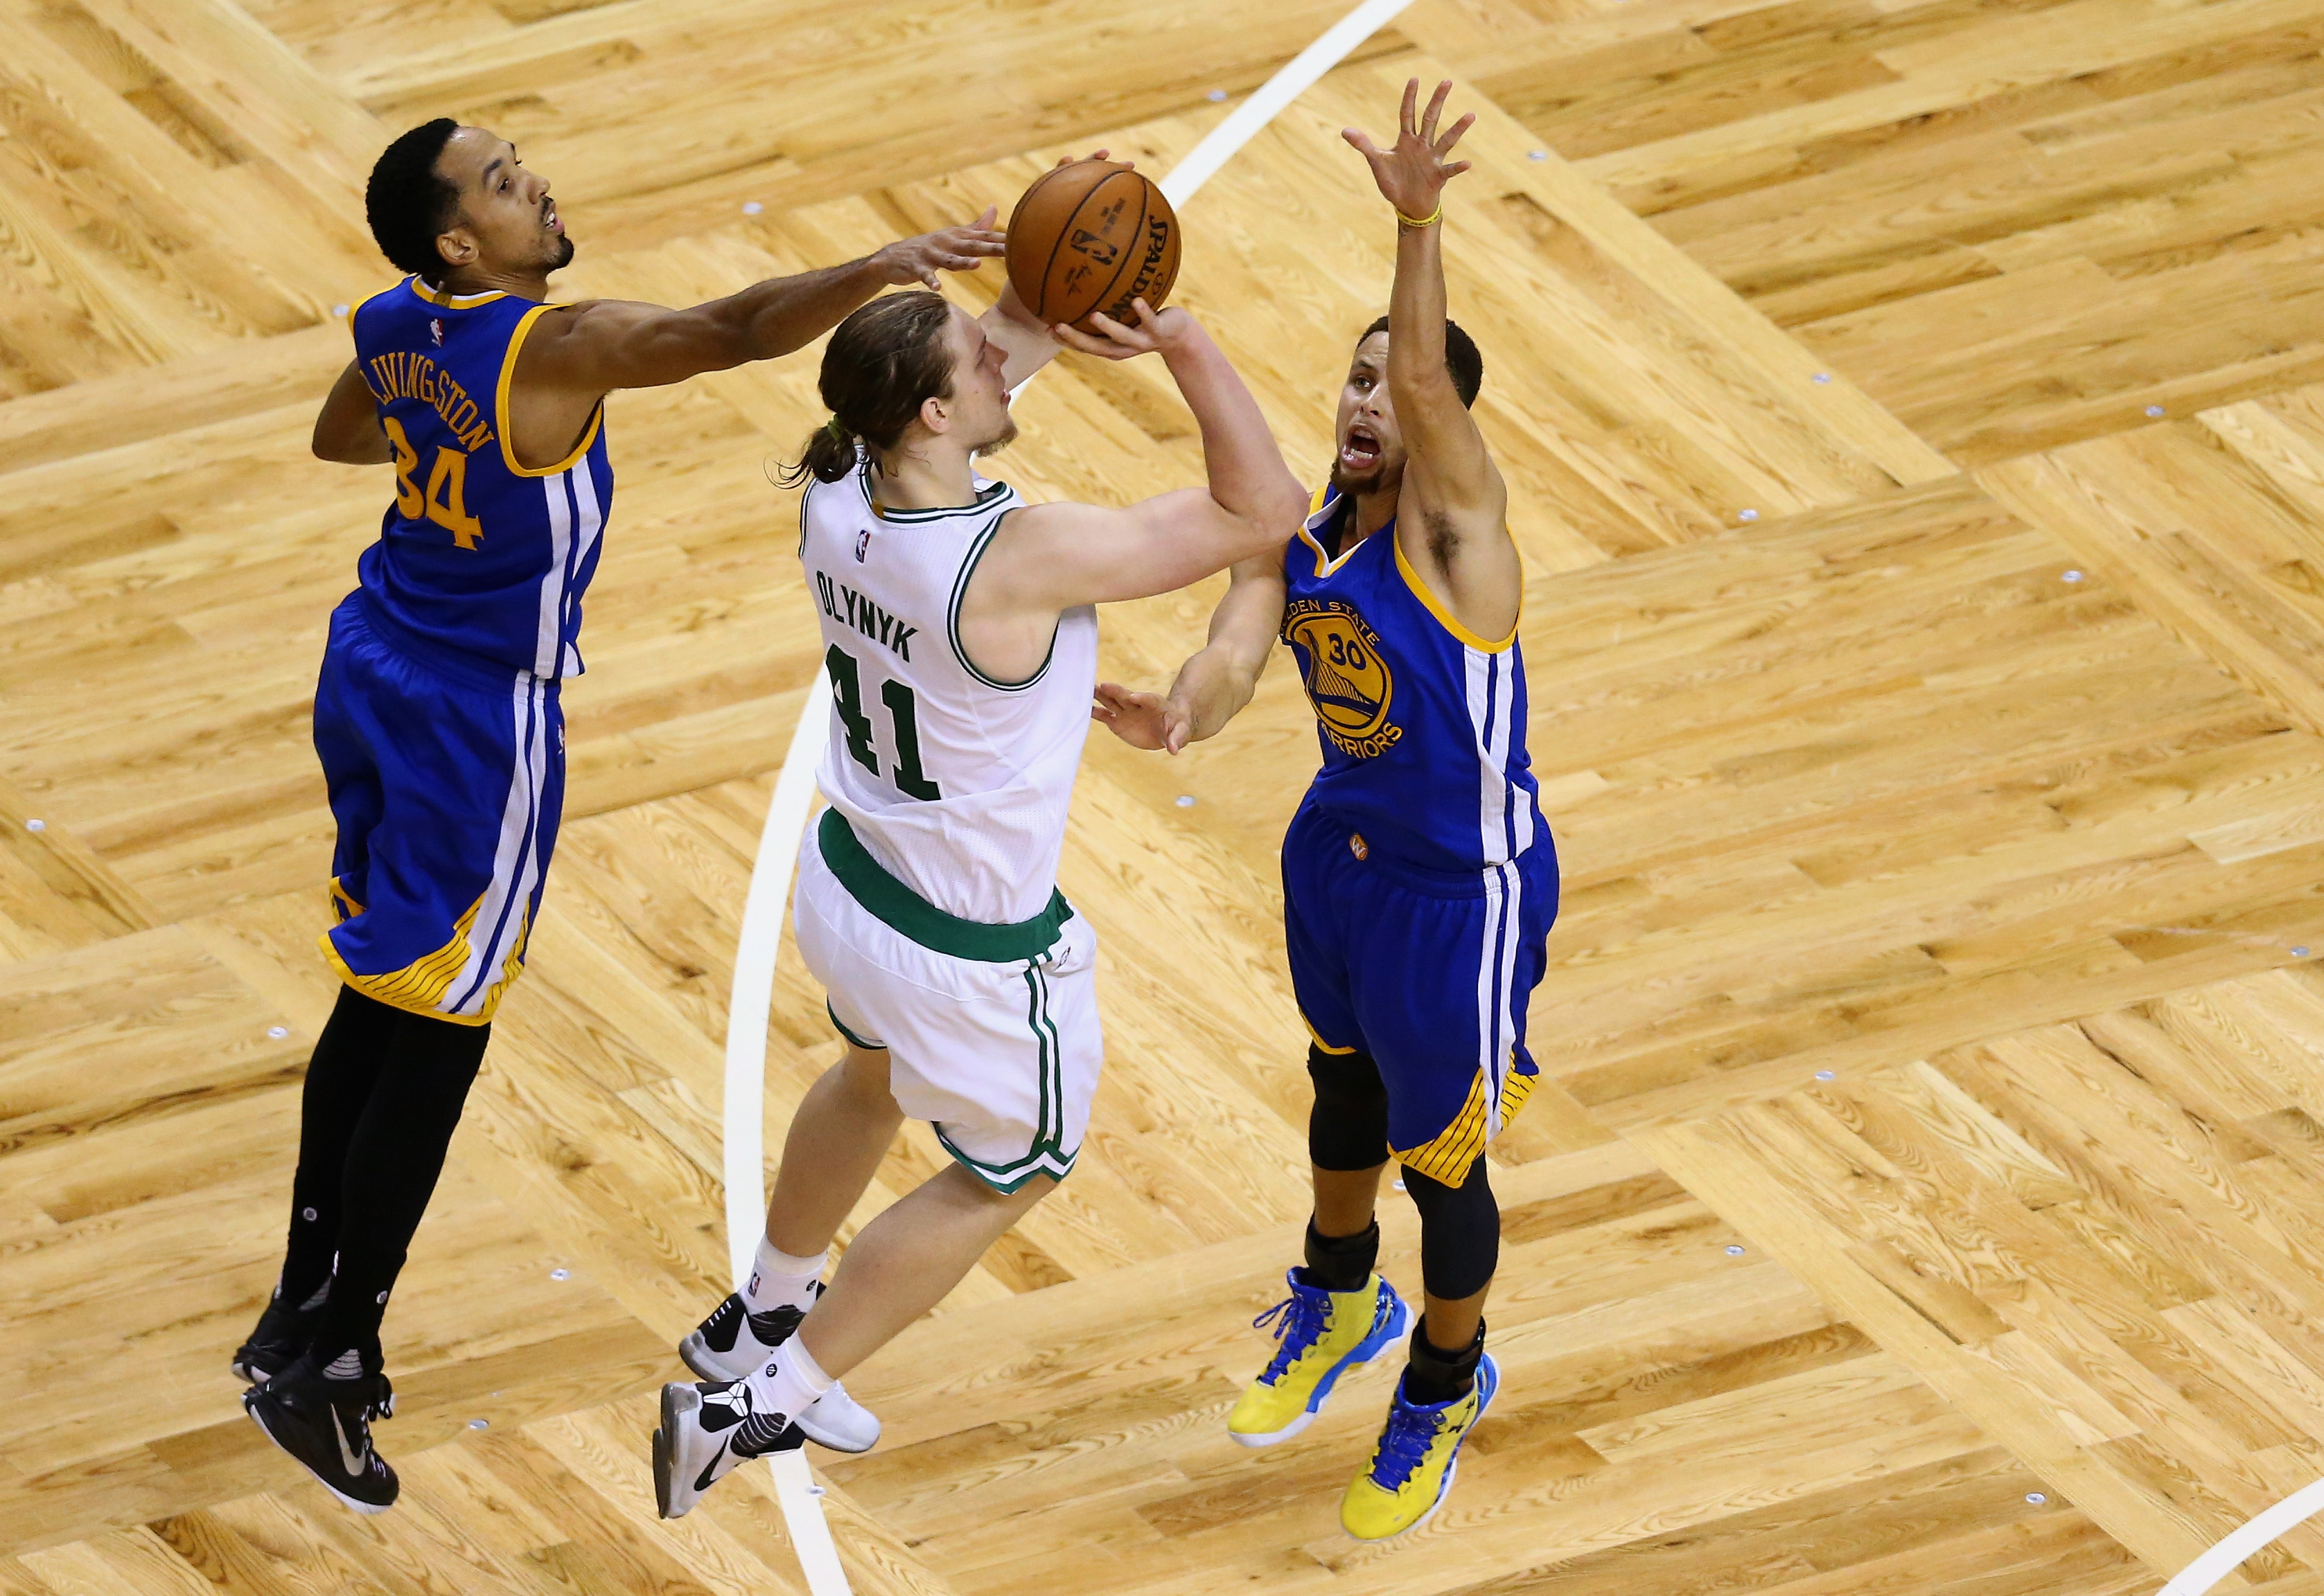 The Warriors play great defense, as Shaun Livingston (left) and Stephen Curry did this season against Boston's Kelly Olynyk. (Getty Images)